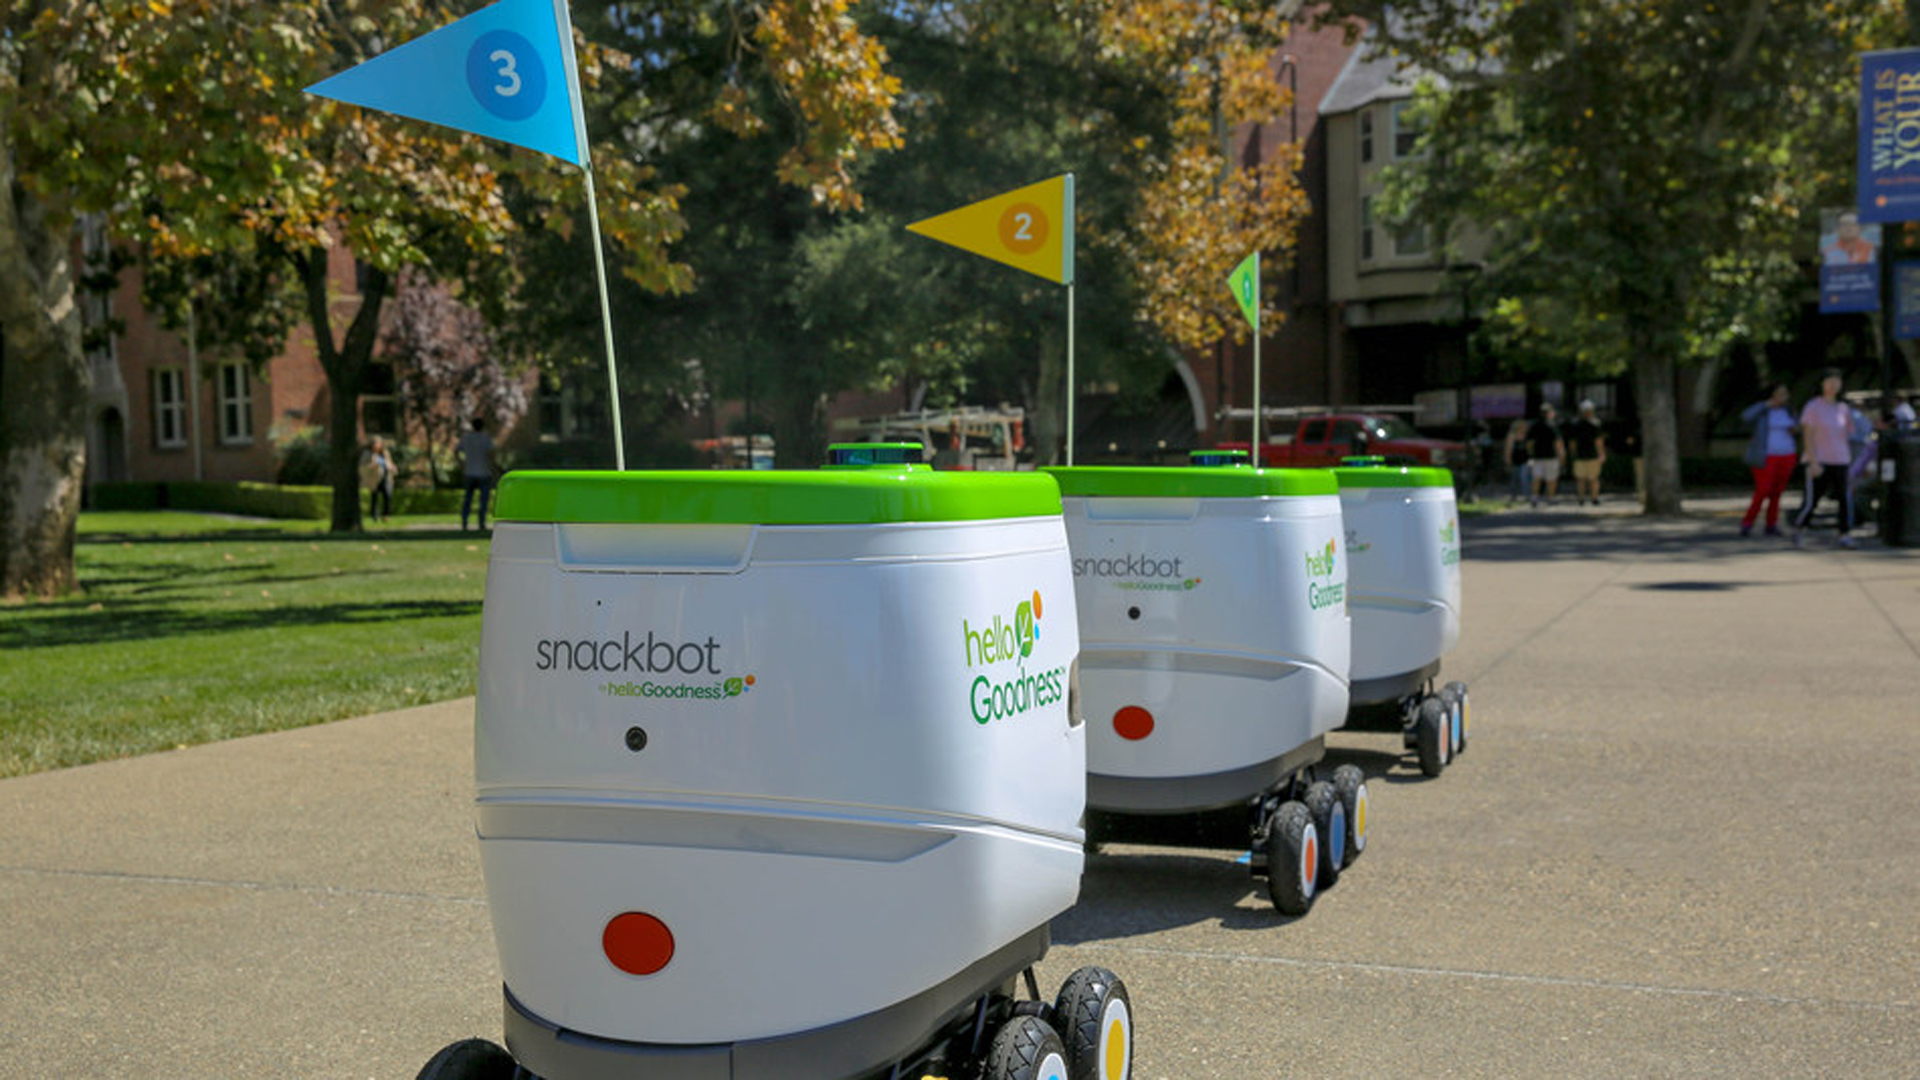 PepsiCo's fleet of Hello Goodness snackbots will start delivering snacks and beverages directly to students at the University of Pacific in Stockton on Jan. 3, 2019. (Credit: PepsiCo)